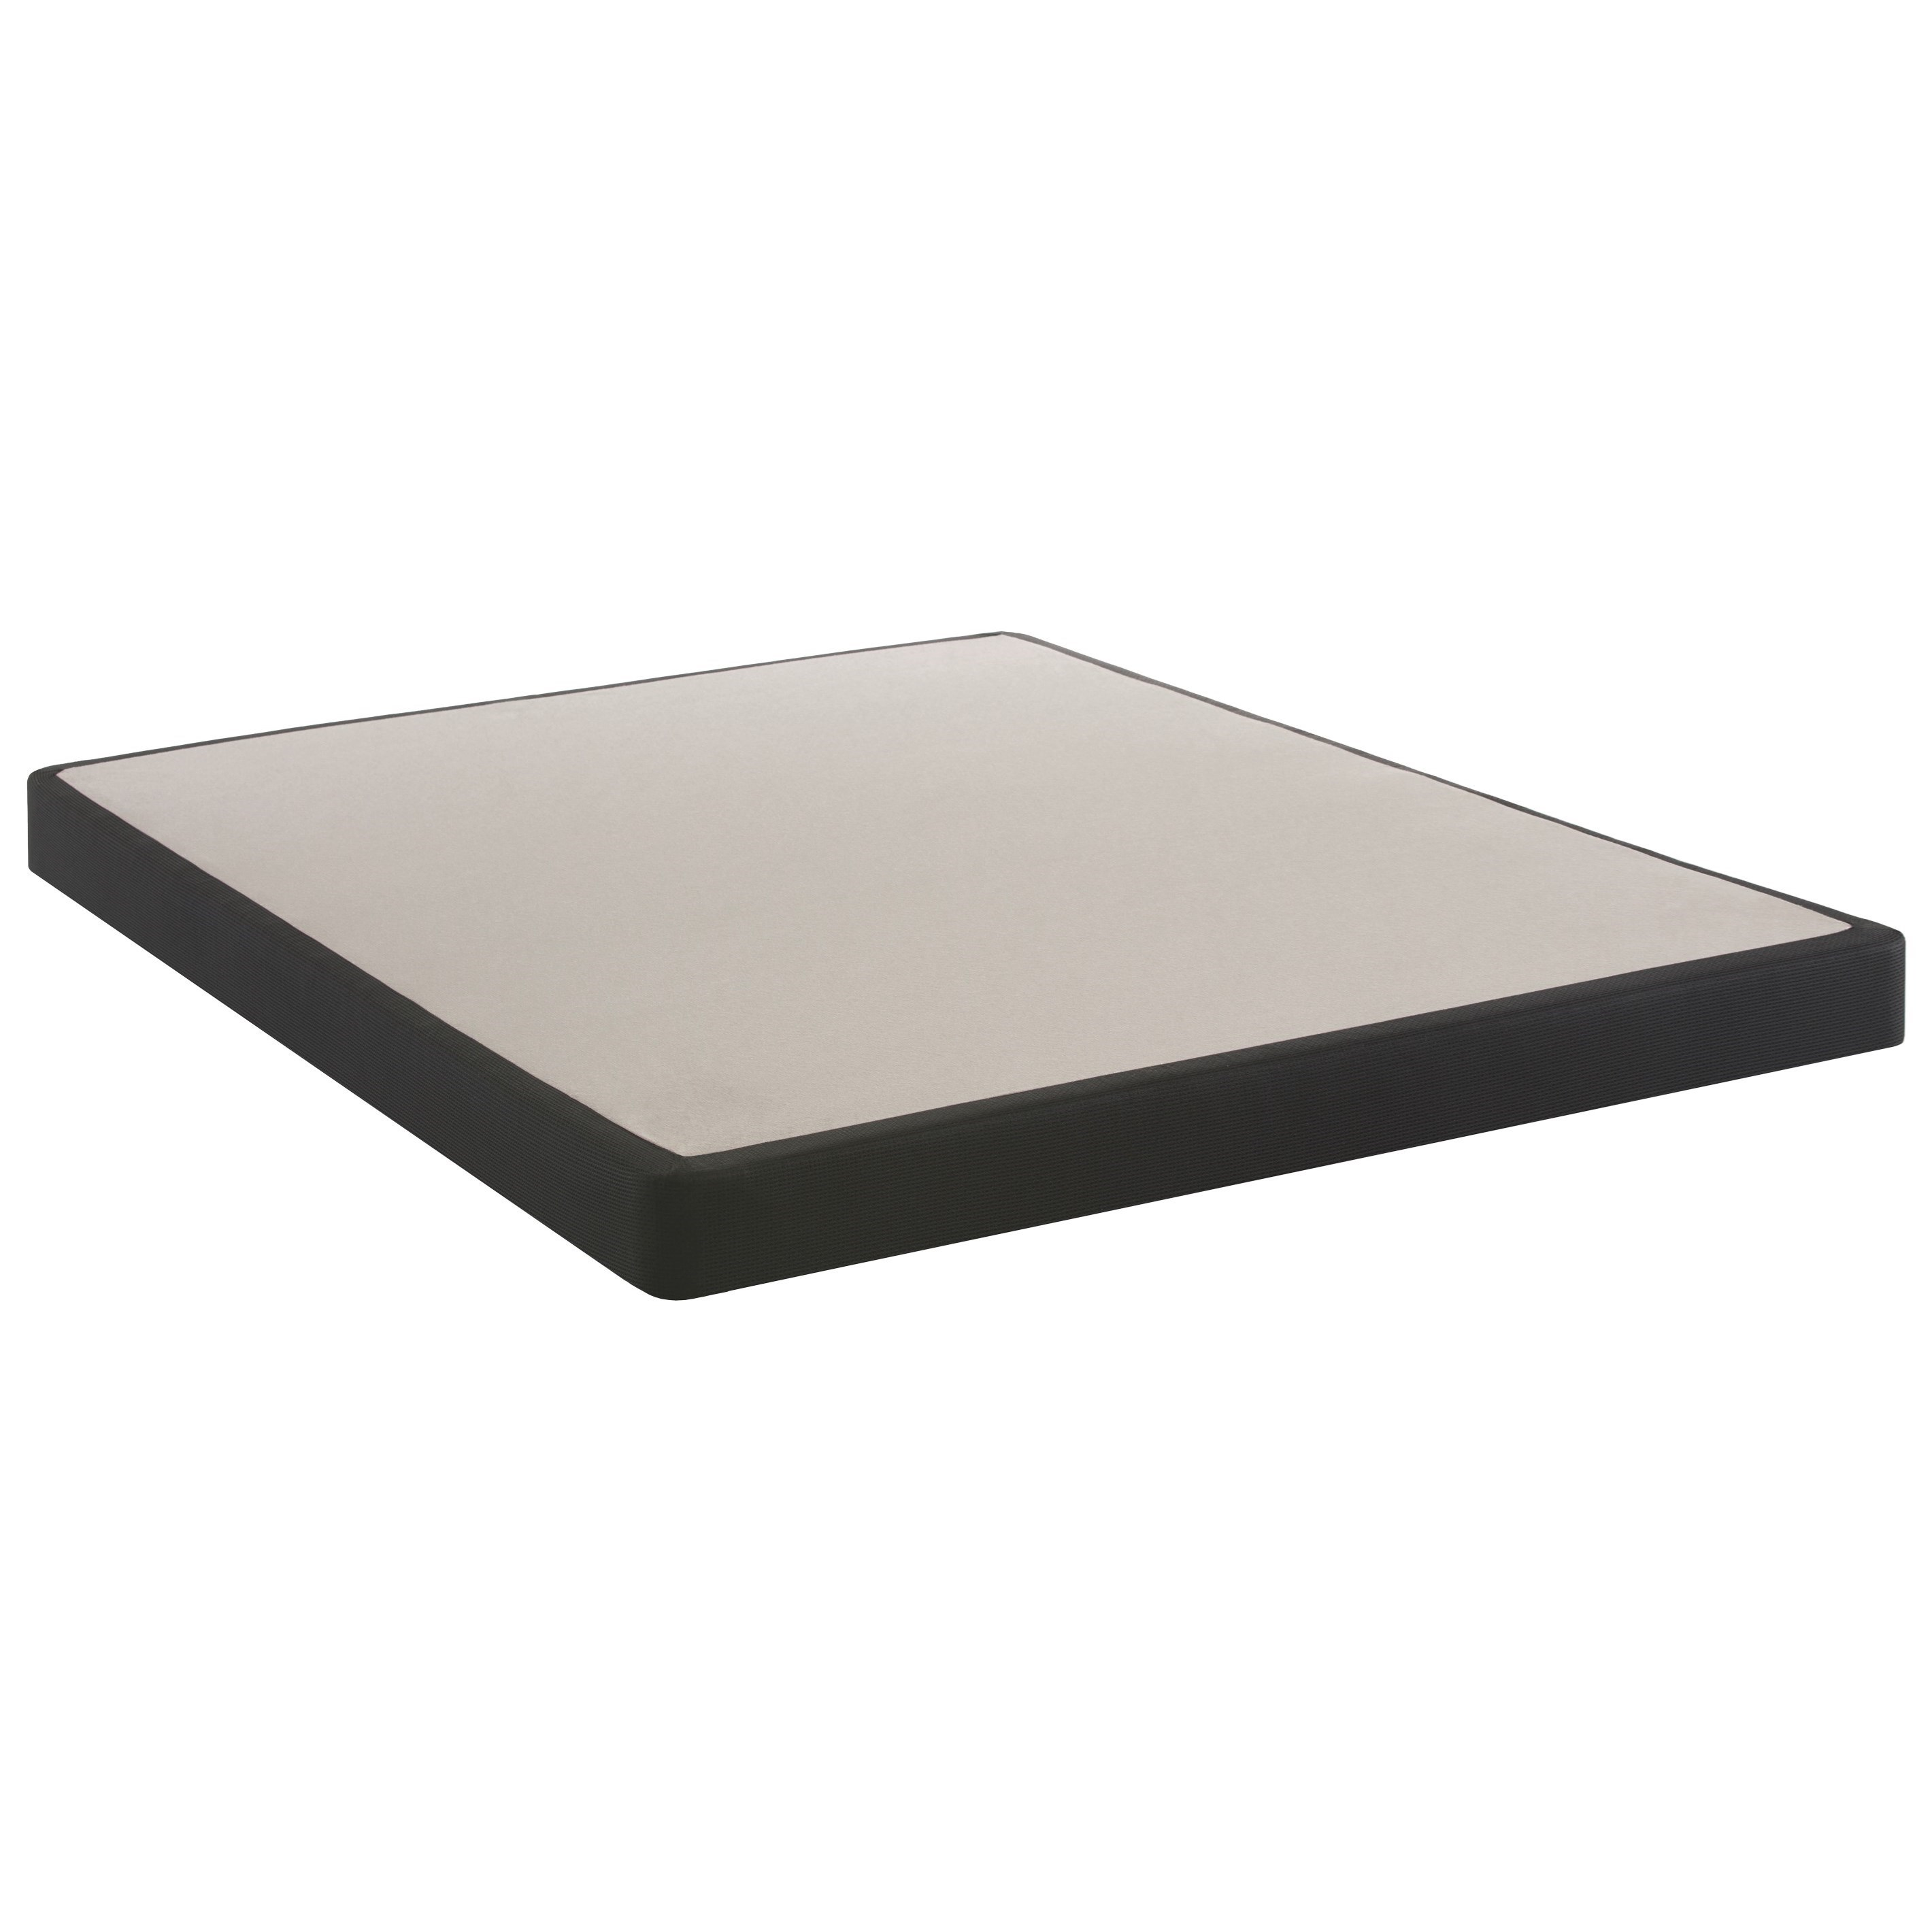 """2017 StableSupport Foundations Full Low Profile Base 5"""" Height by Sealy at Lynn's Furniture & Mattress"""